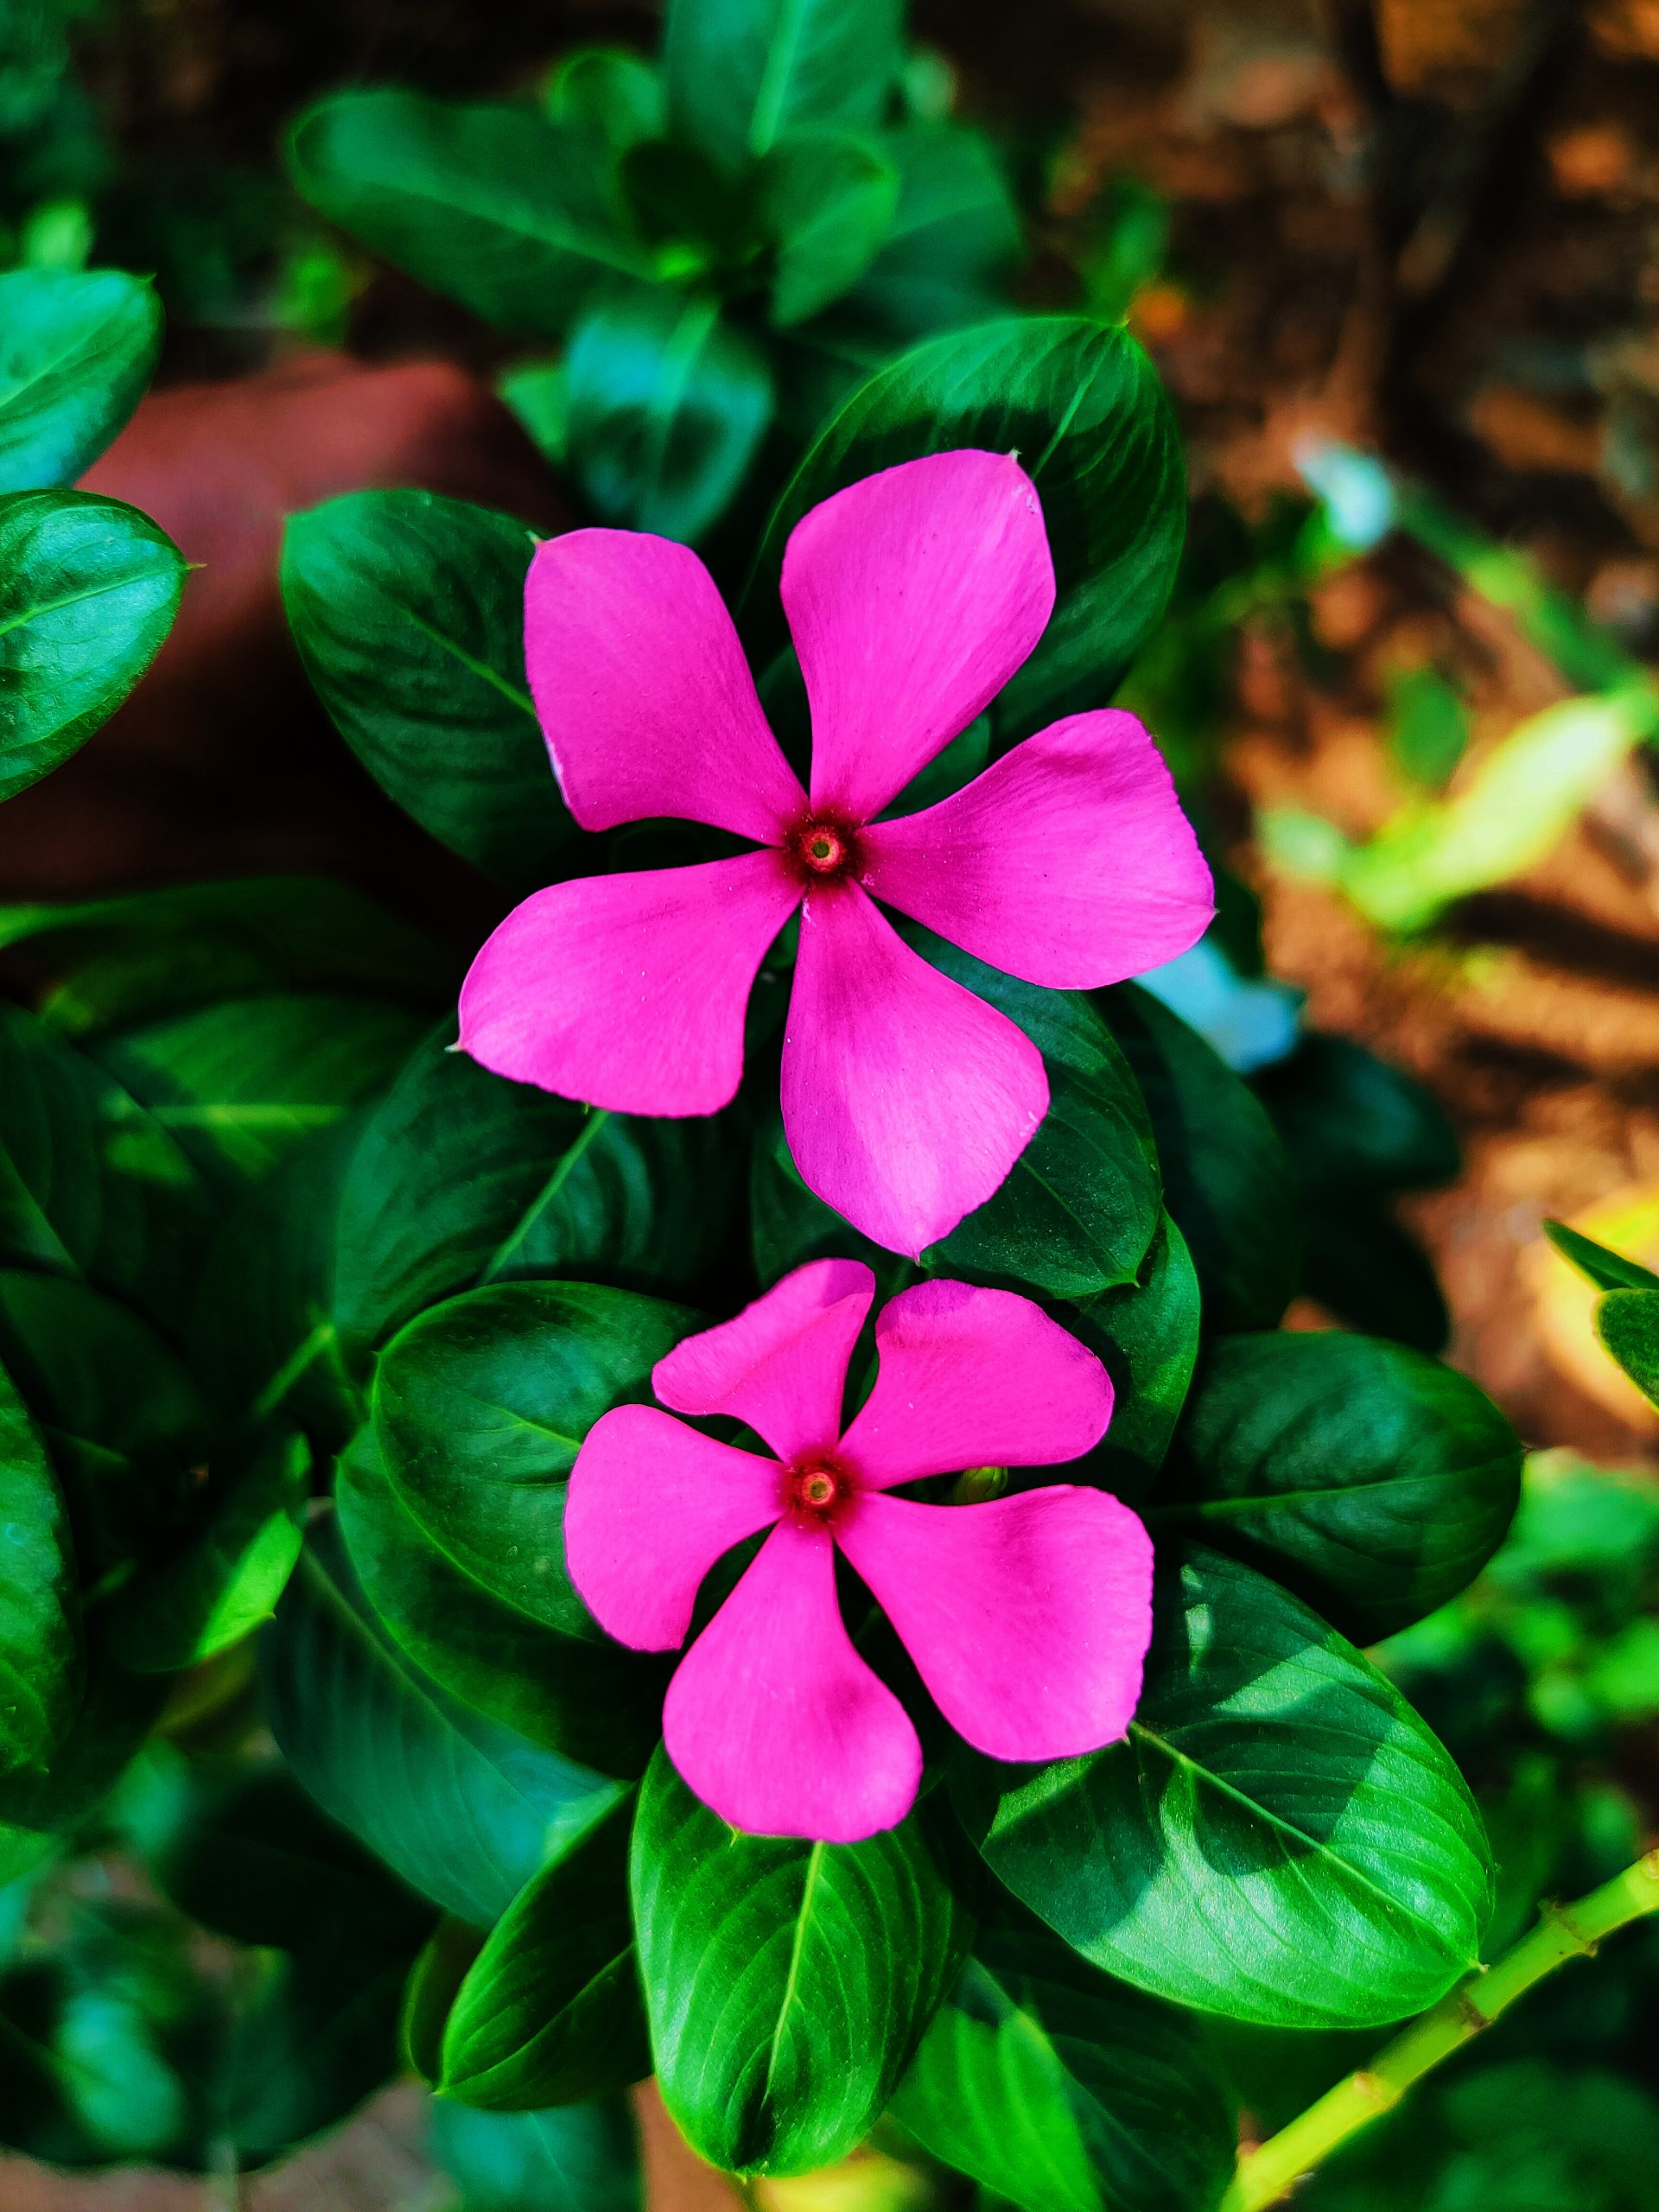 Pink flowers of a plant